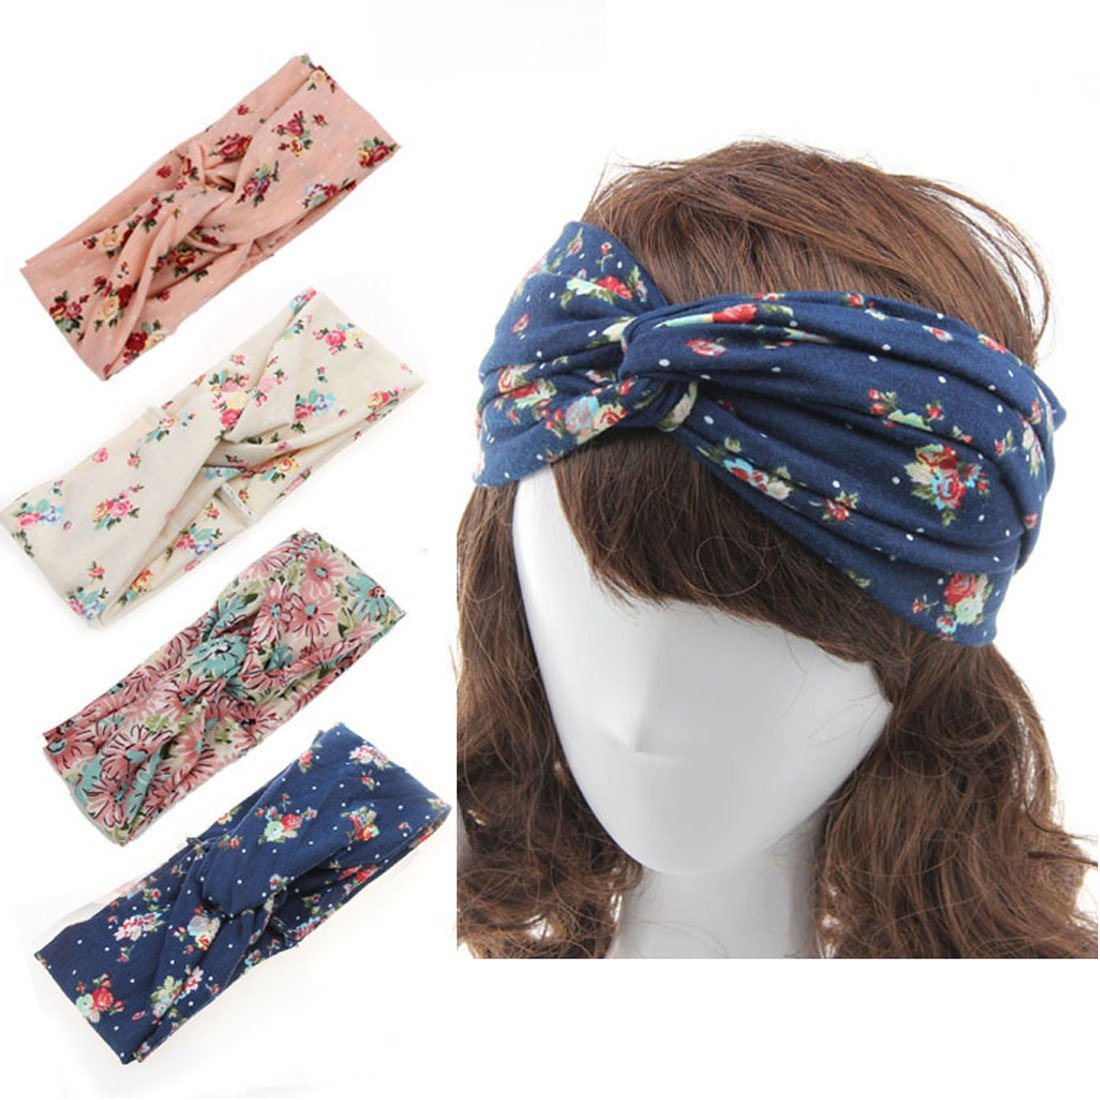 King Star Women 4 Pack Headbands Turban Head Wrap Twisted Knotted Hair Band H17063002-2